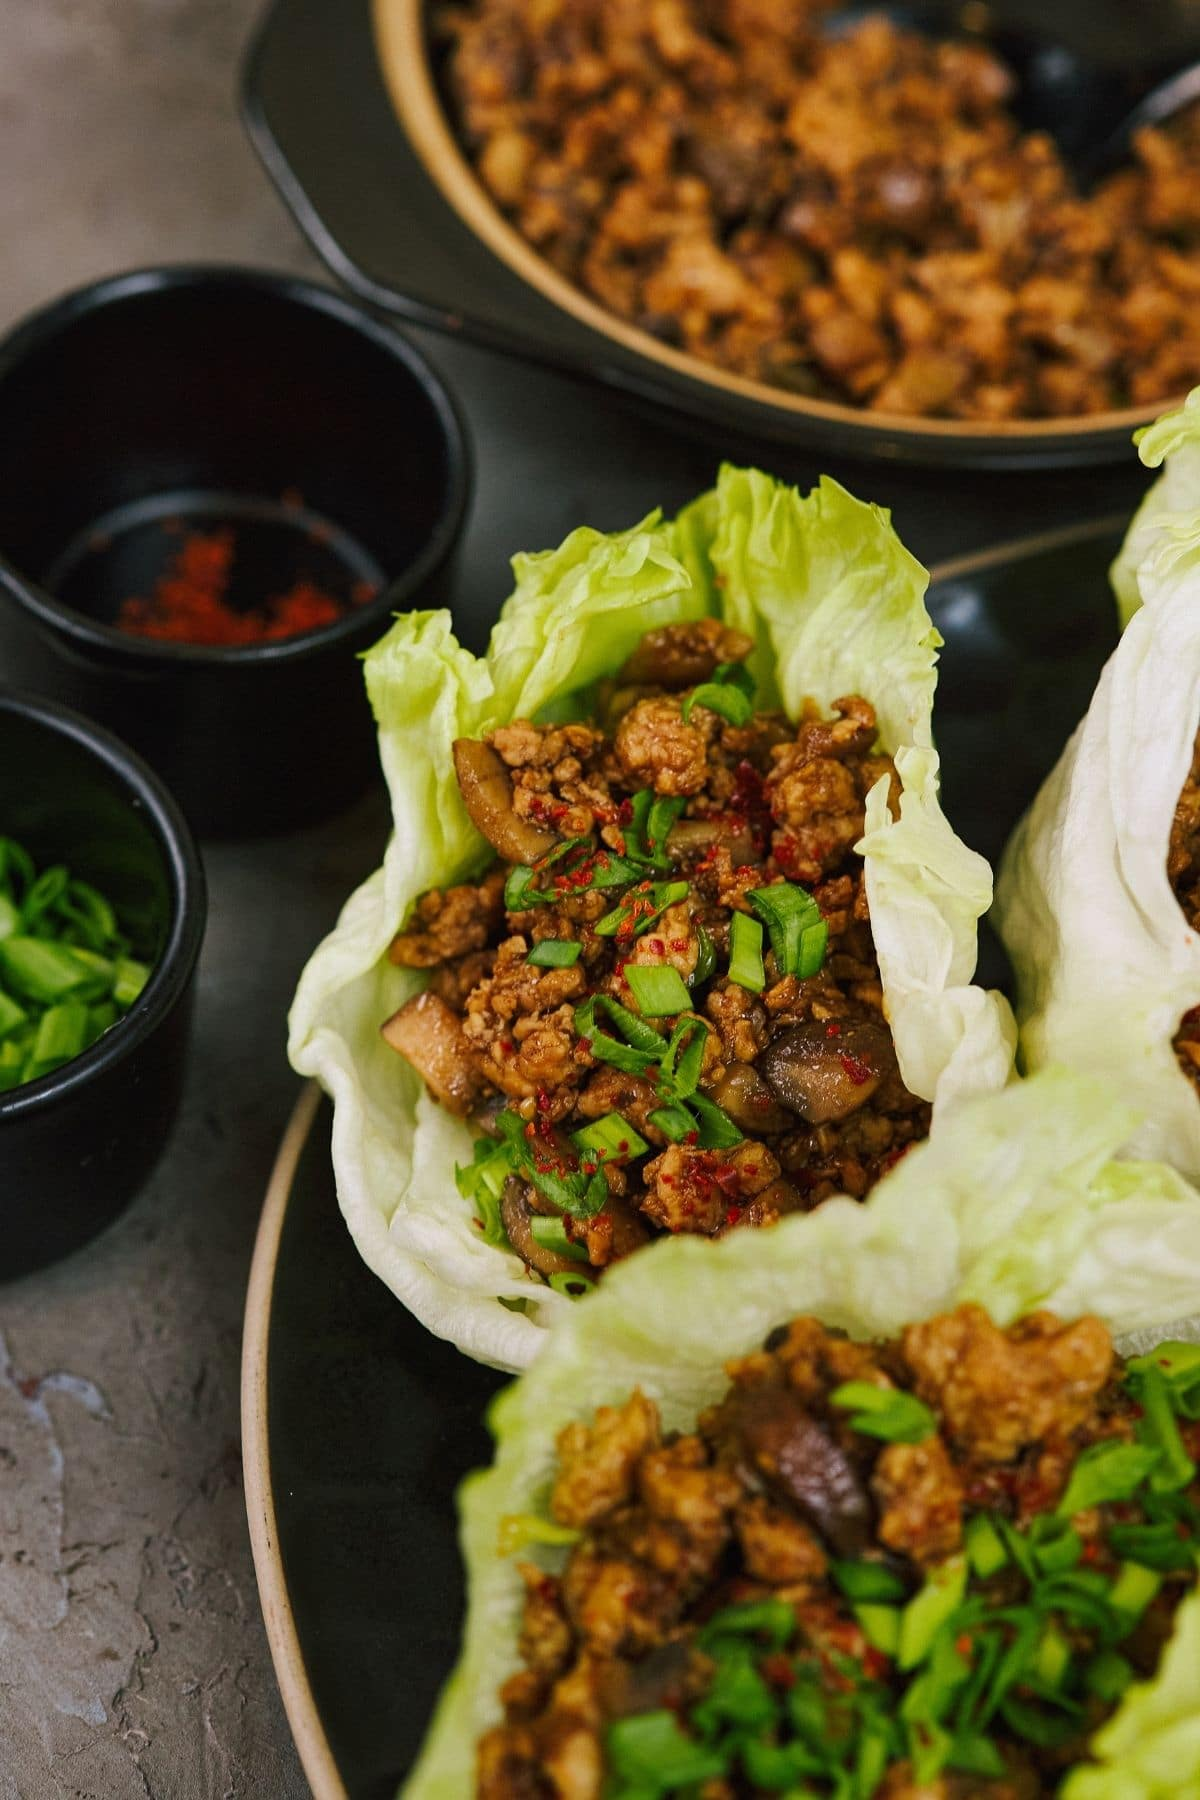 copycat P.F. Chang's teriyaki chicken lettuce wraps on plate with skillet of meat in background